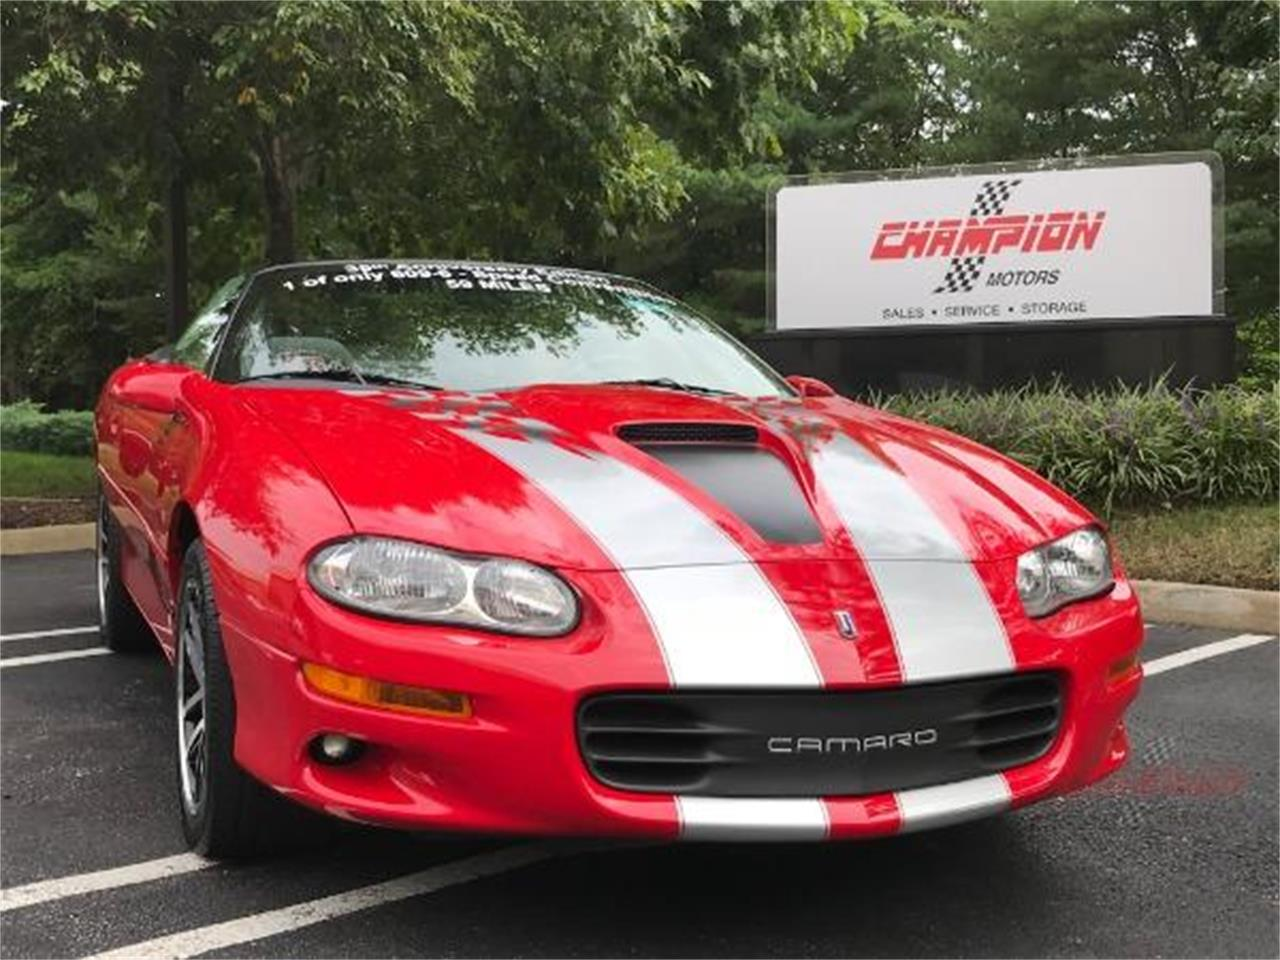 2002 Chevrolet Camaro (CC-1357258) for sale in Syosset, New York